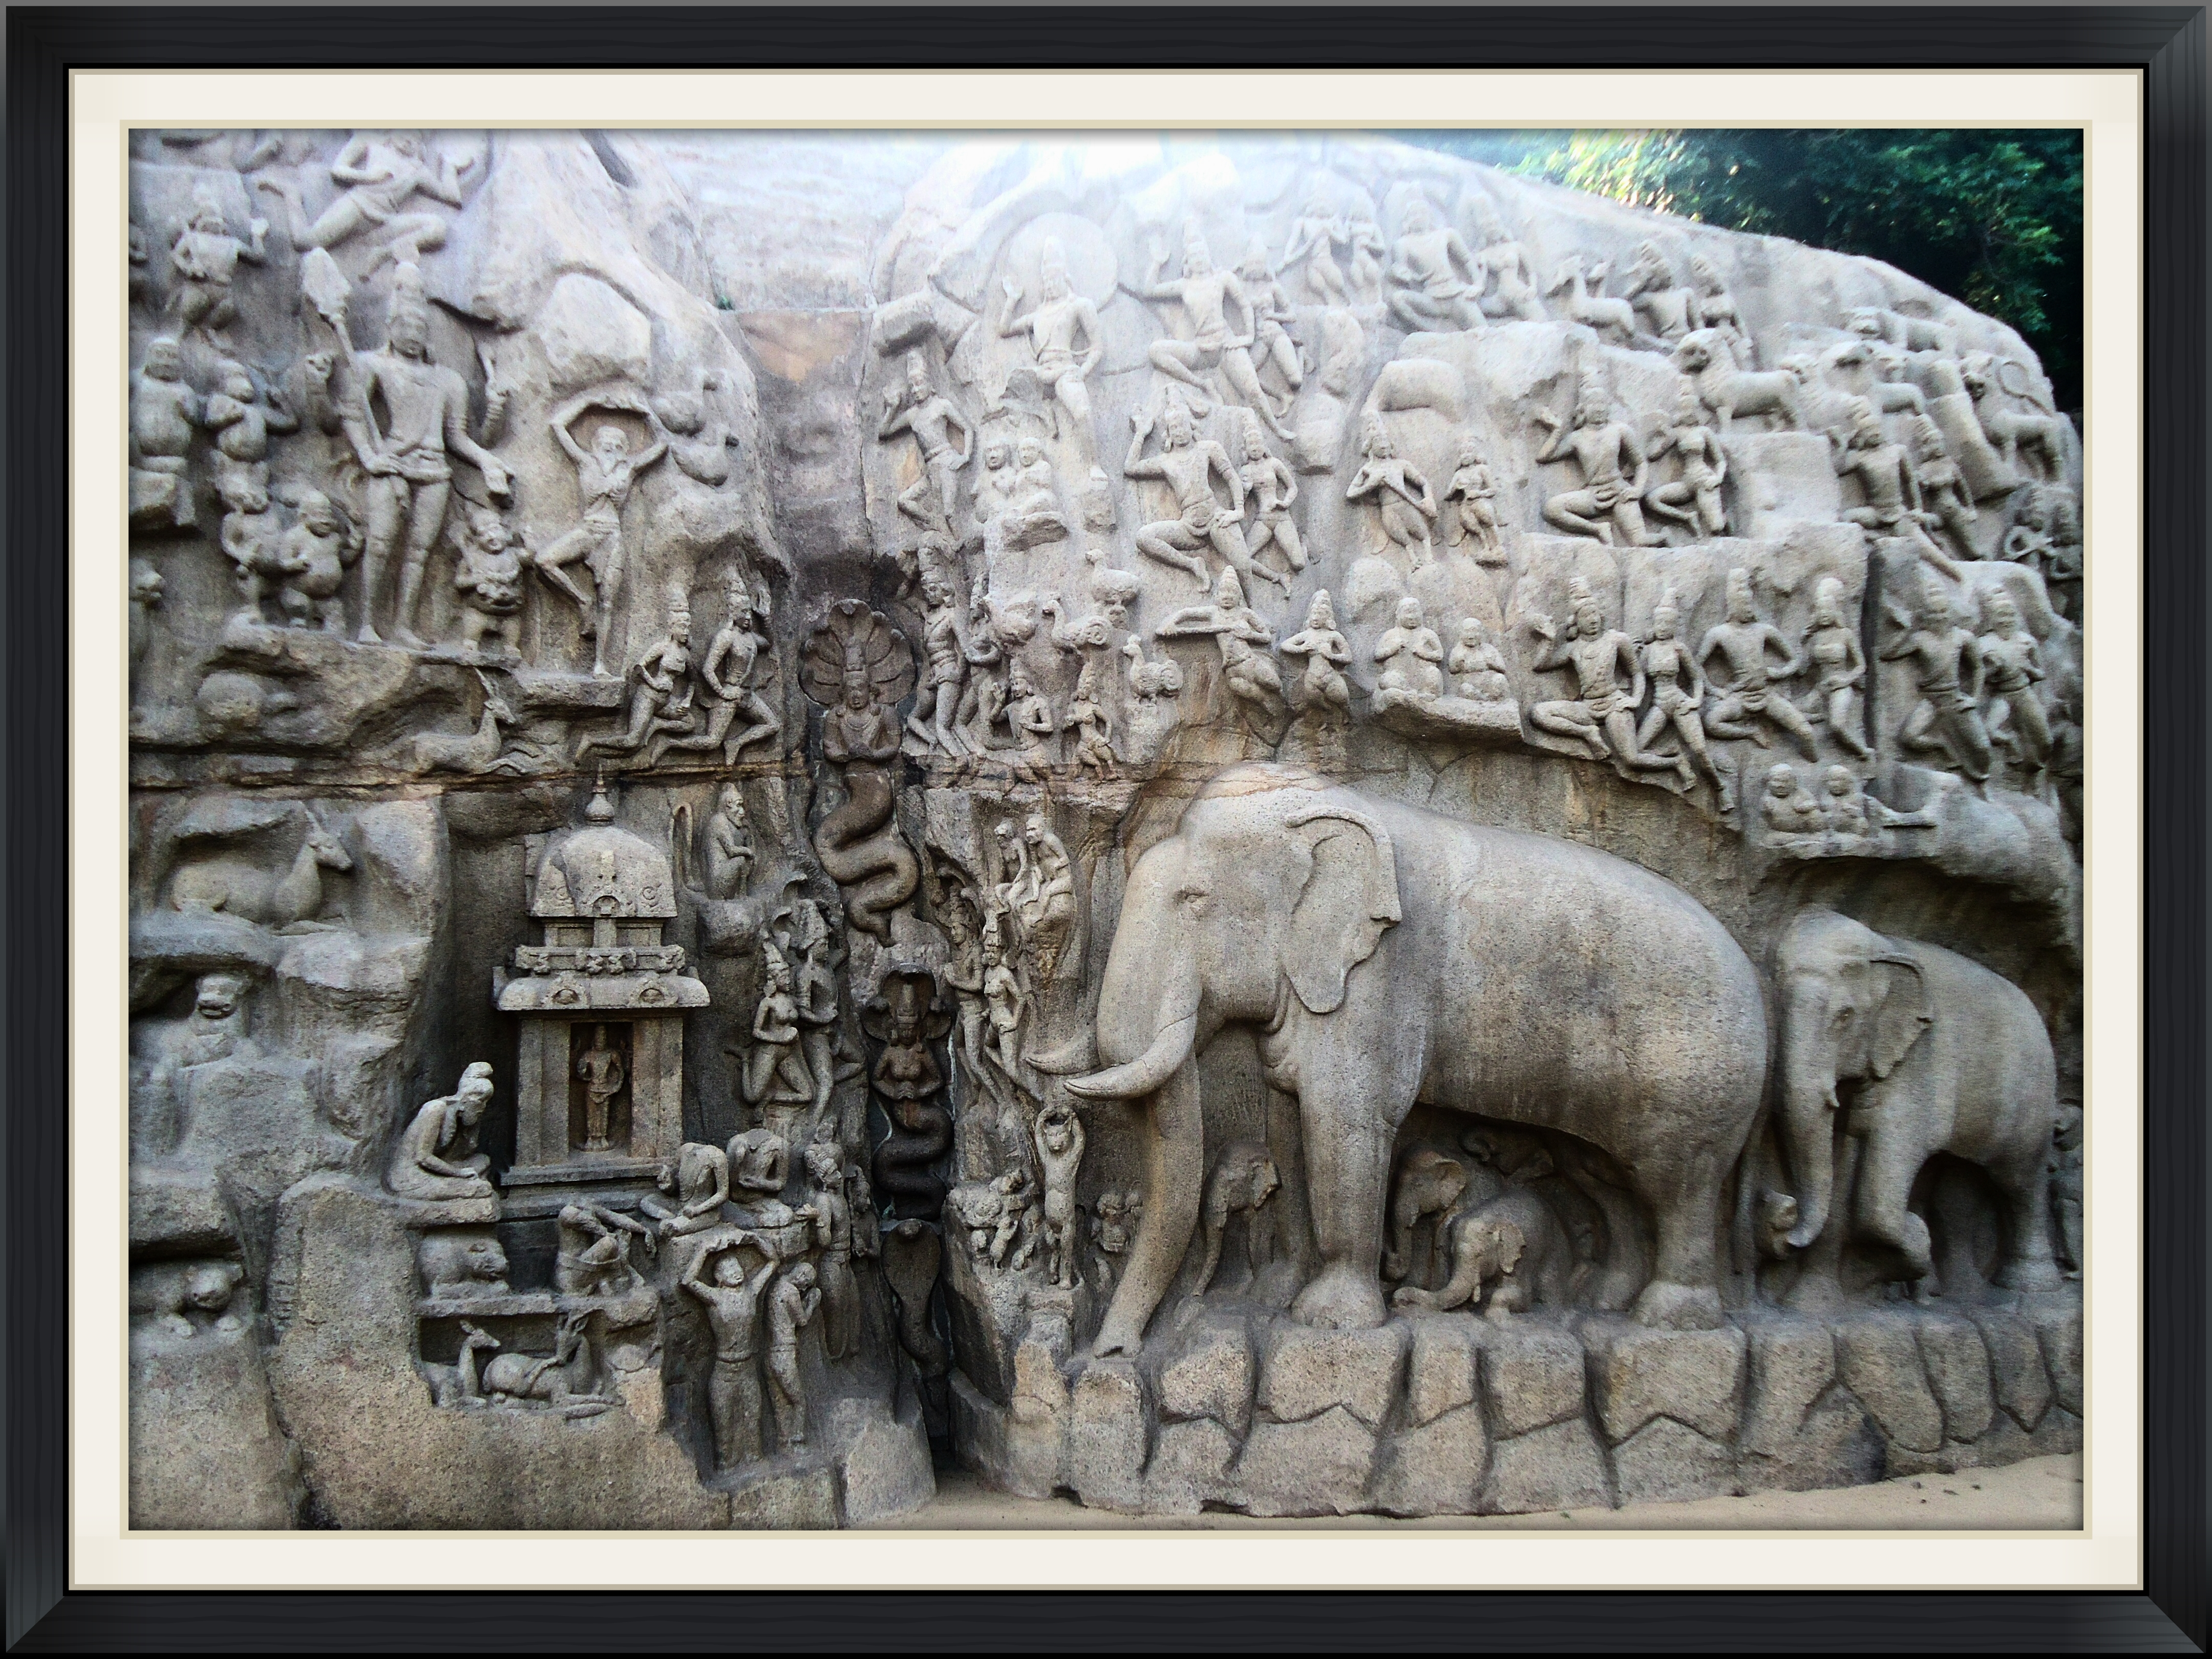 A picture of a monolithic sculpture - Mahabalipuram